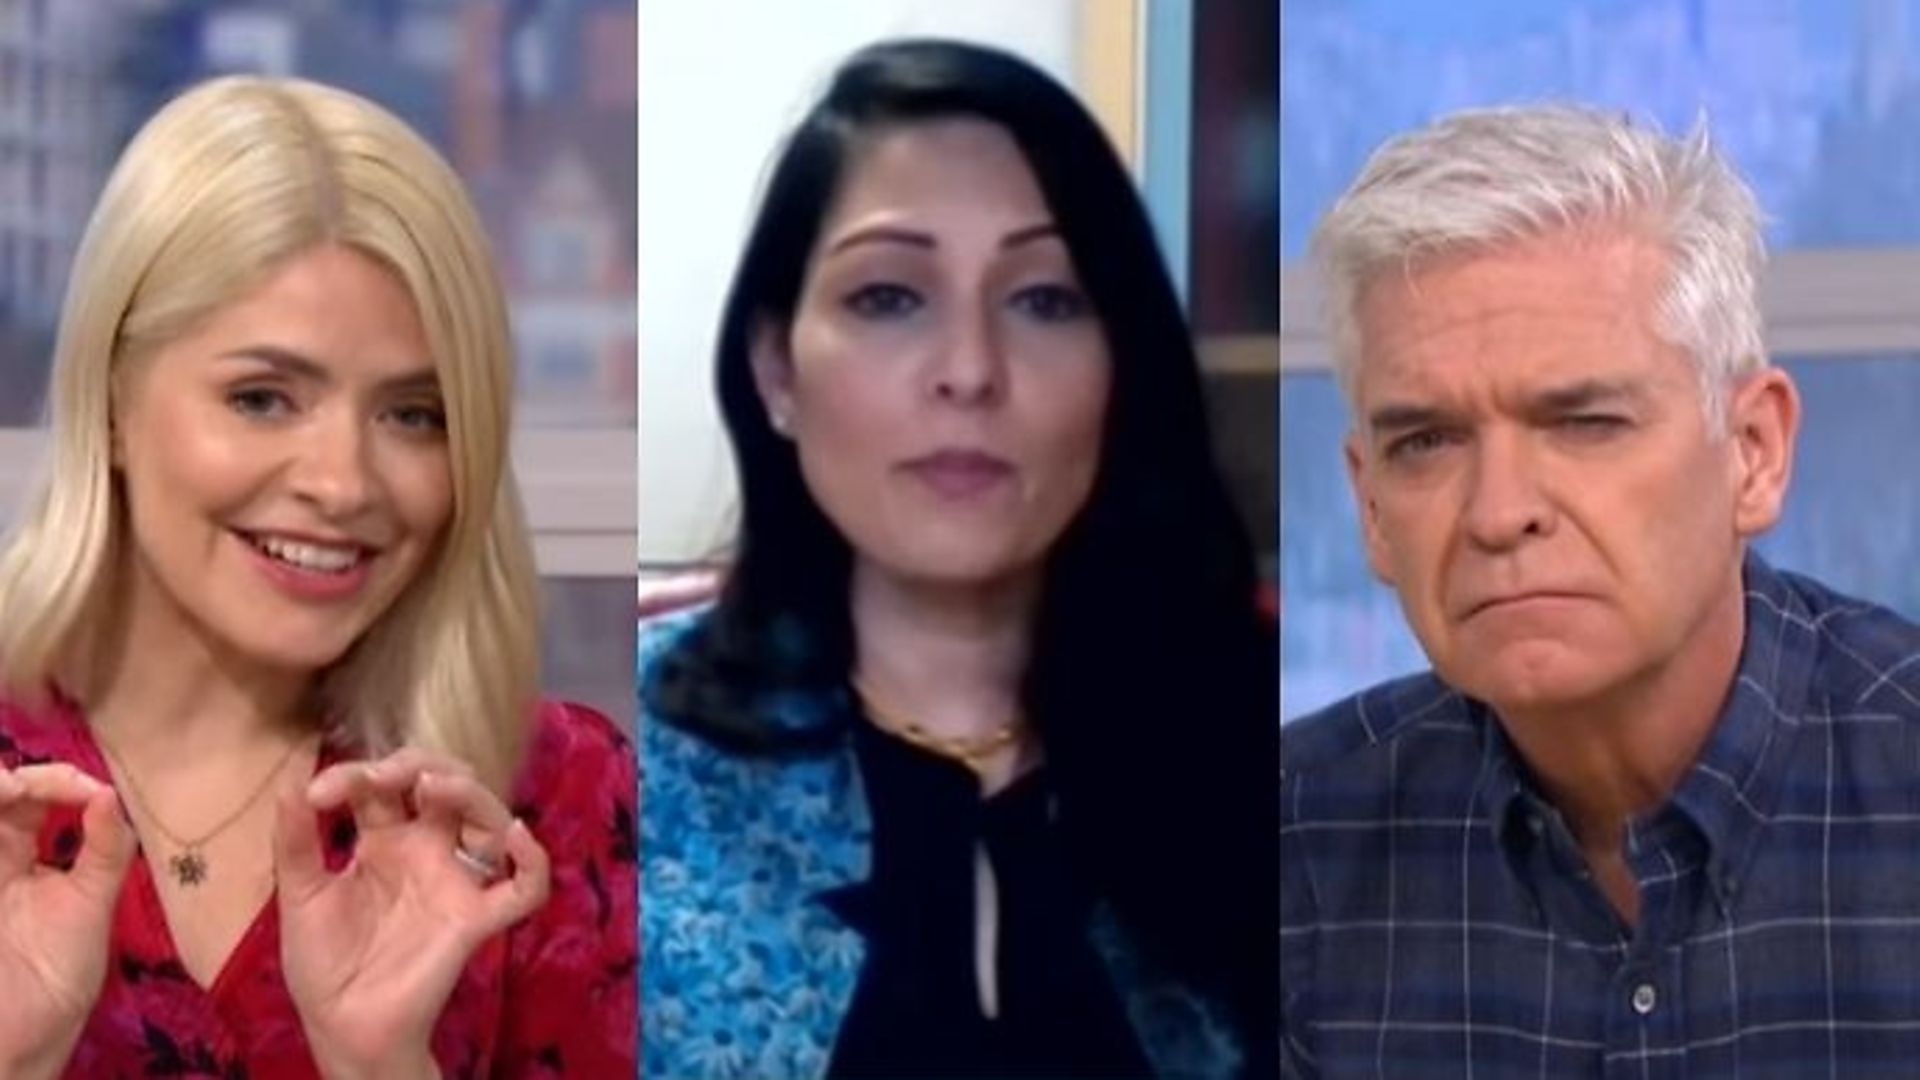 Home secretary Priti Patel appeared to spark more confusion with an appearance on This Morning alongside Philip Schofield and Holly Willoughby. - Credit: ITV